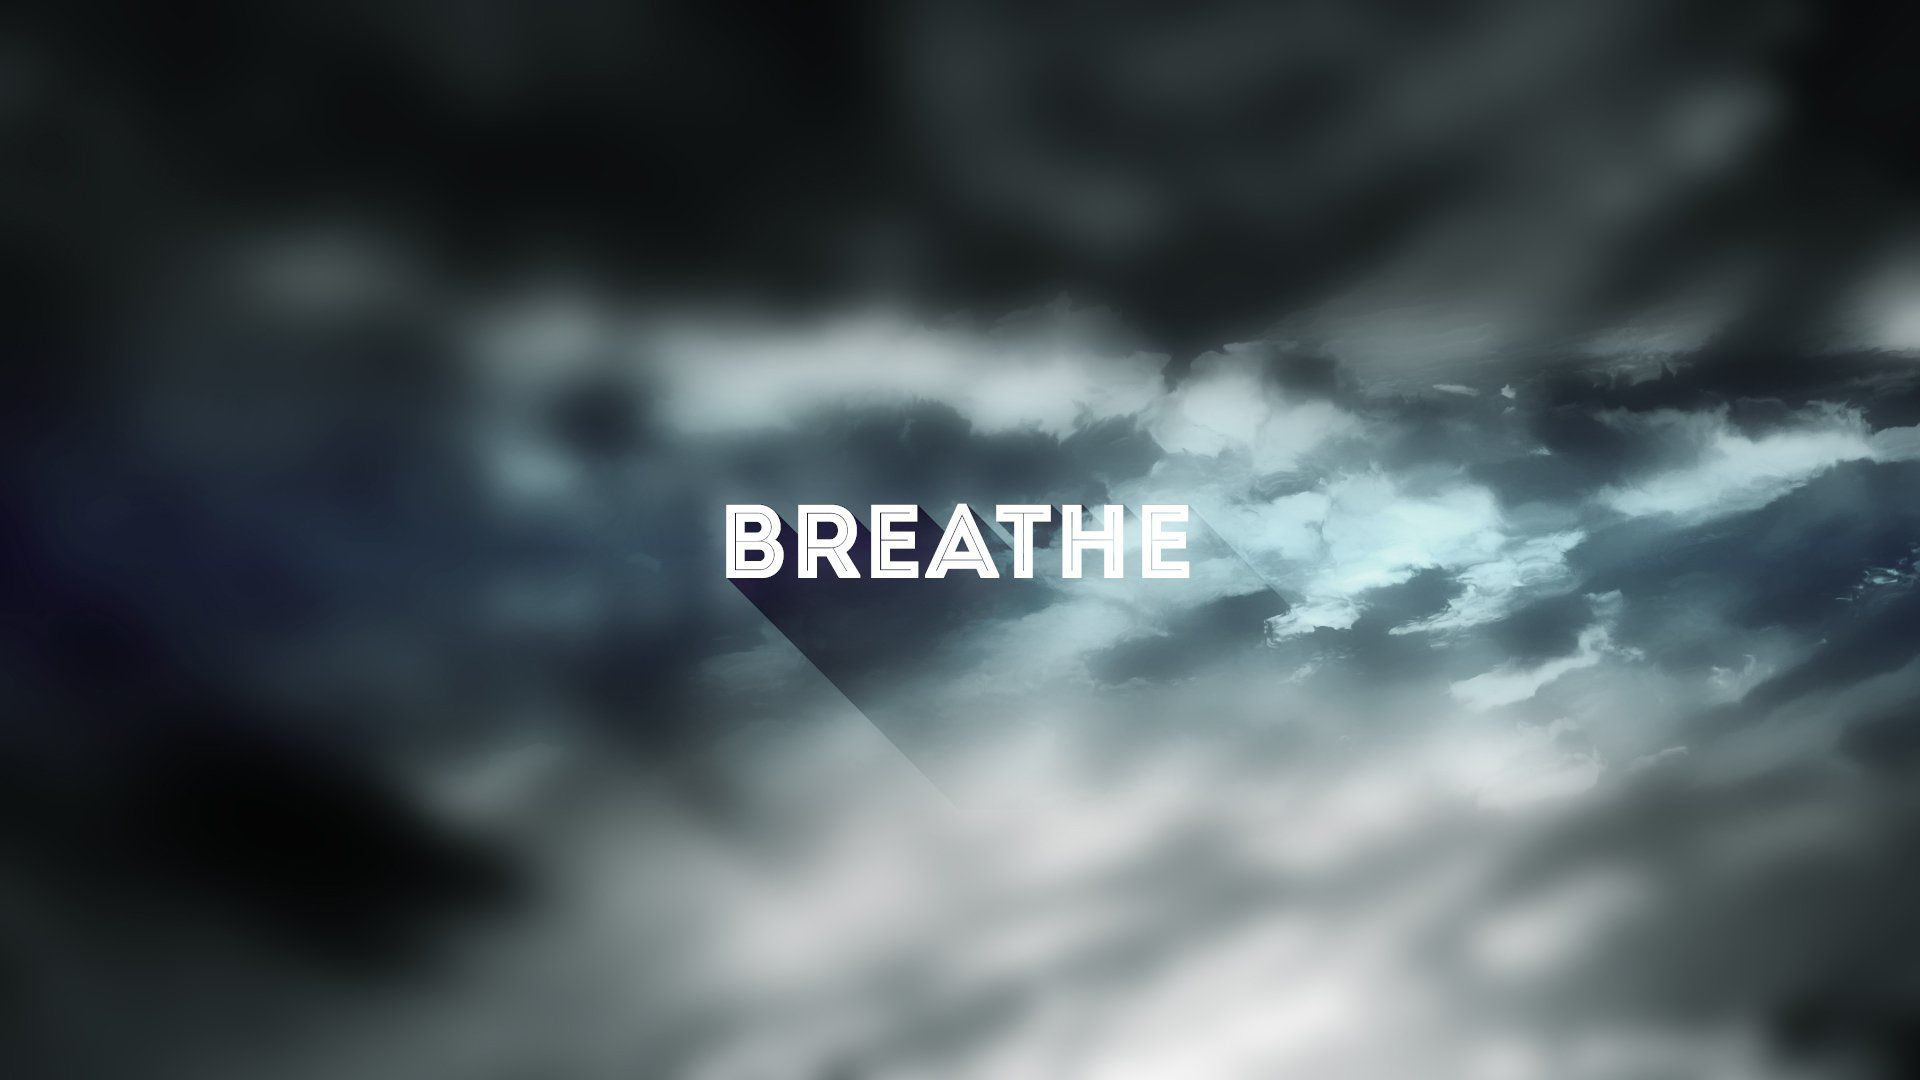 Breathe Wallpaper – Features of This Modern wallpaper